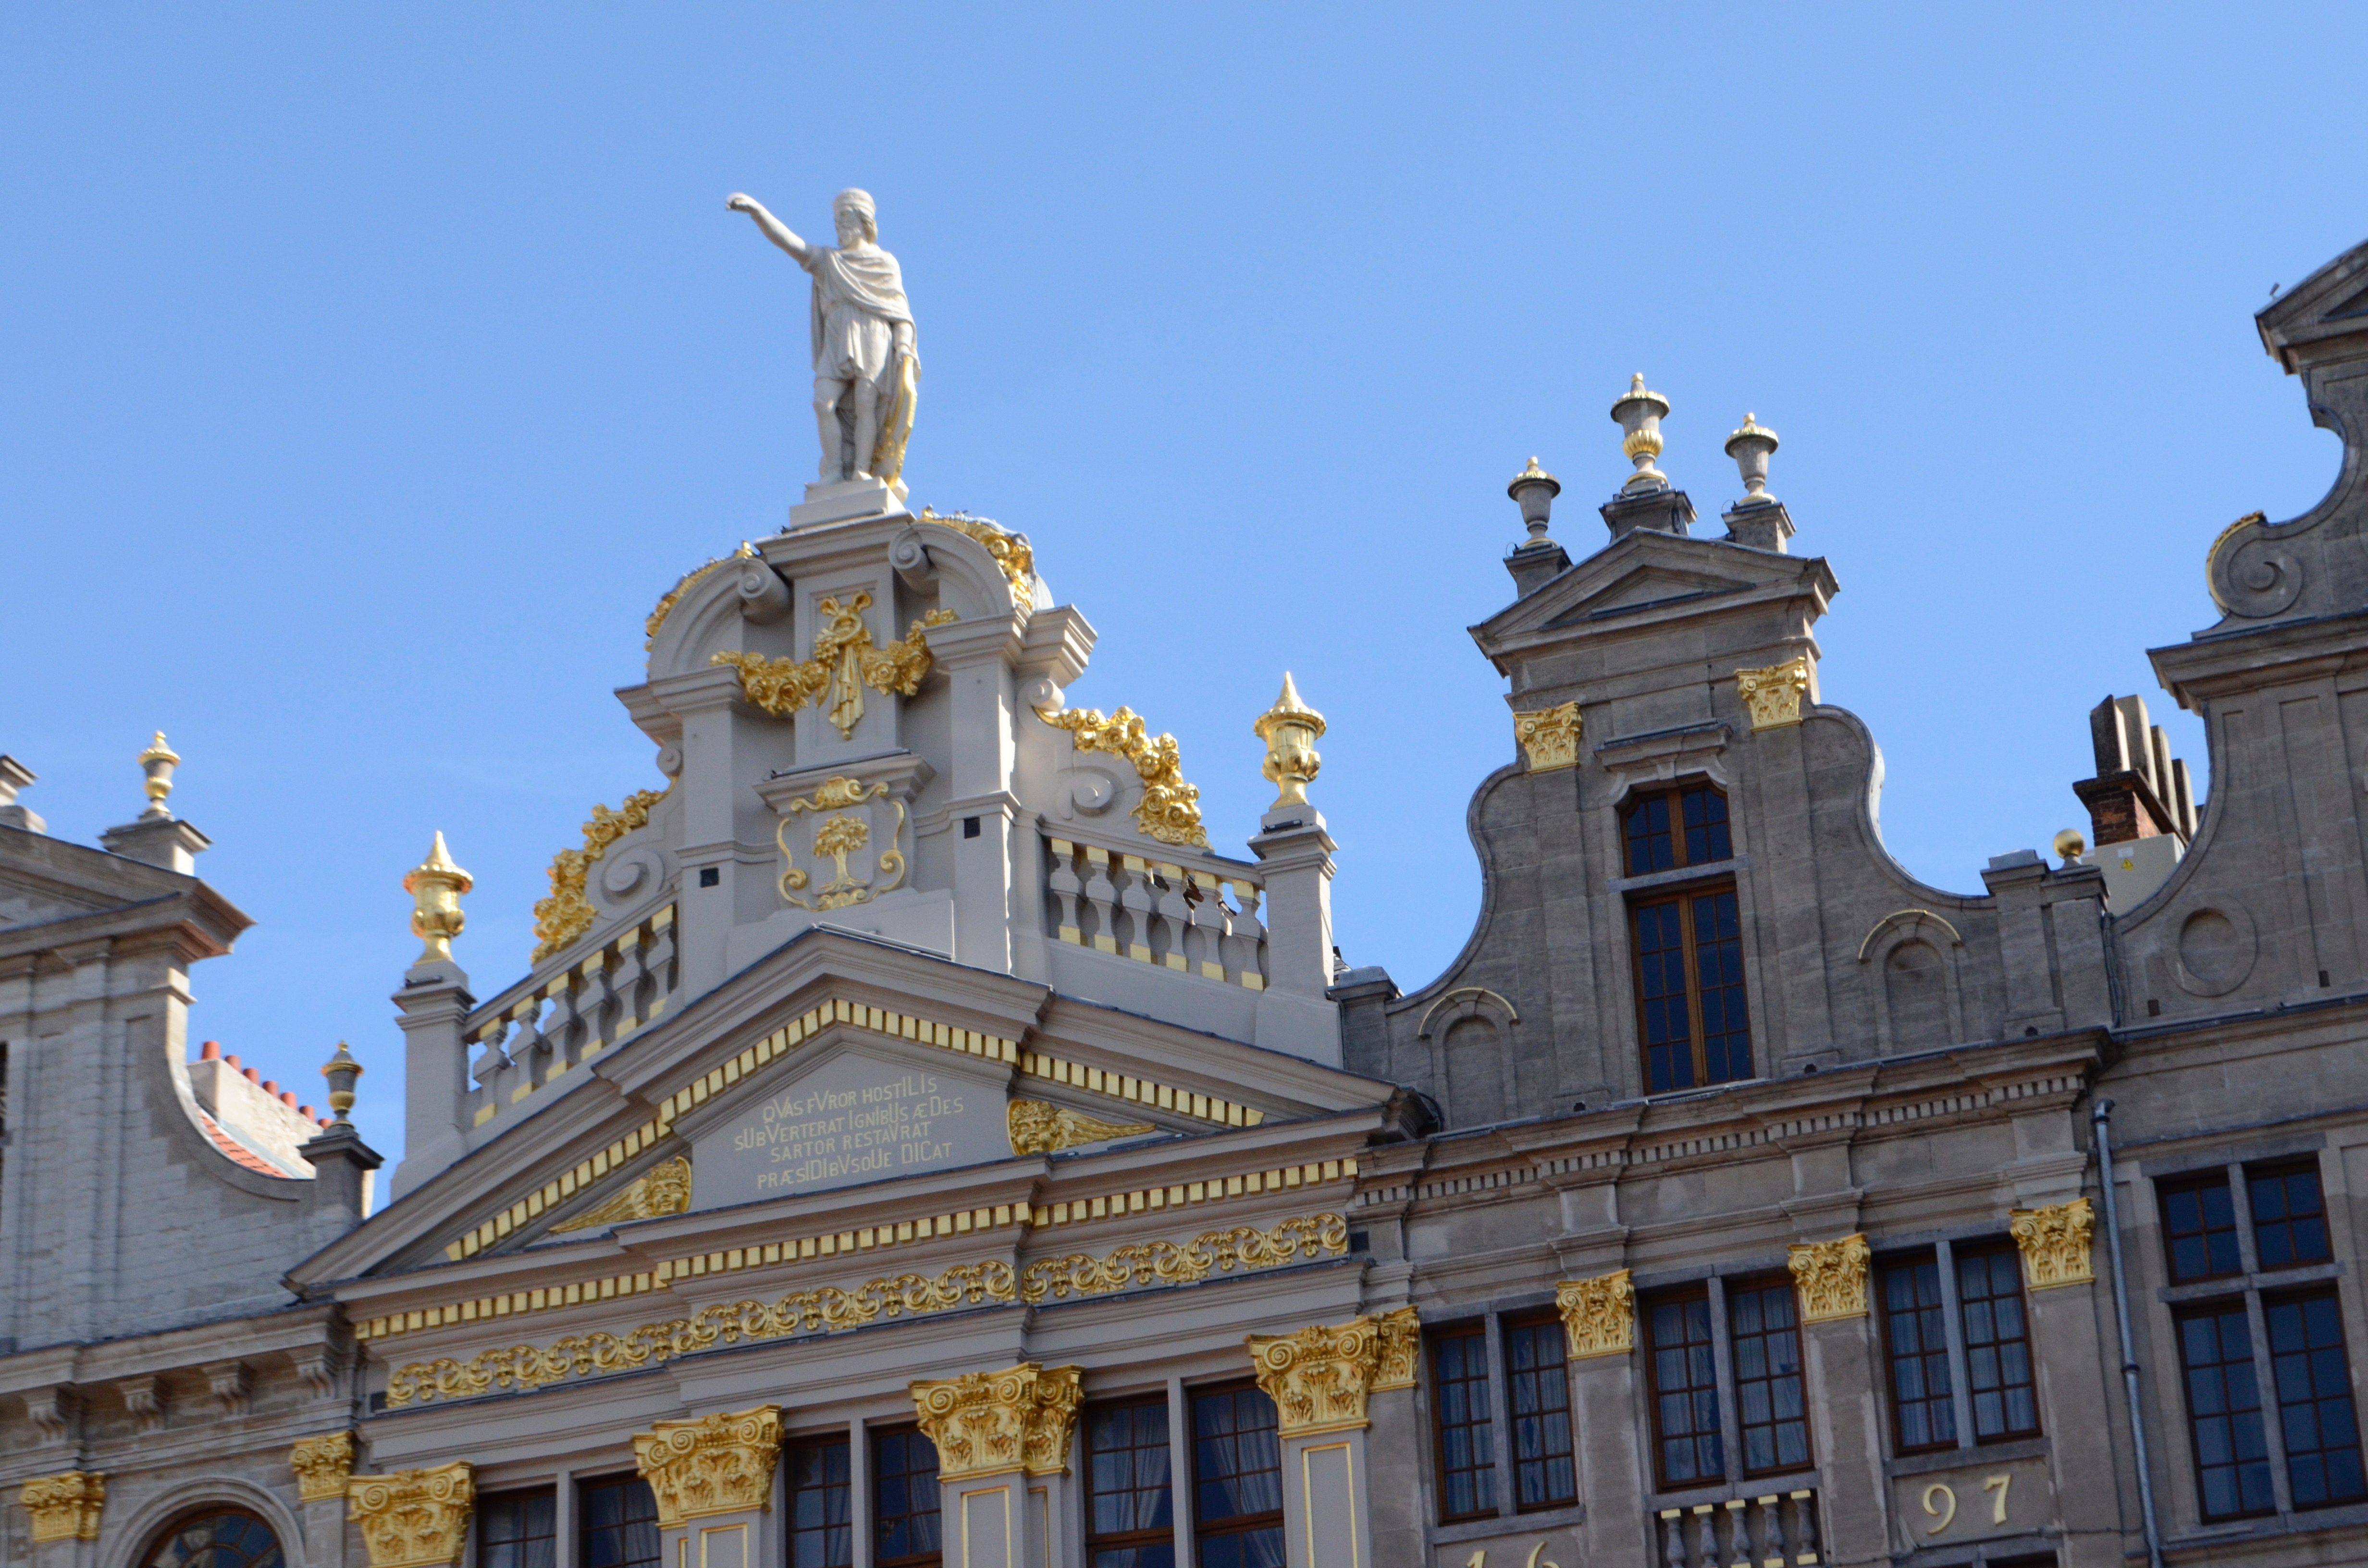 The roofline of one of the buildings around Brussels' Grand Place